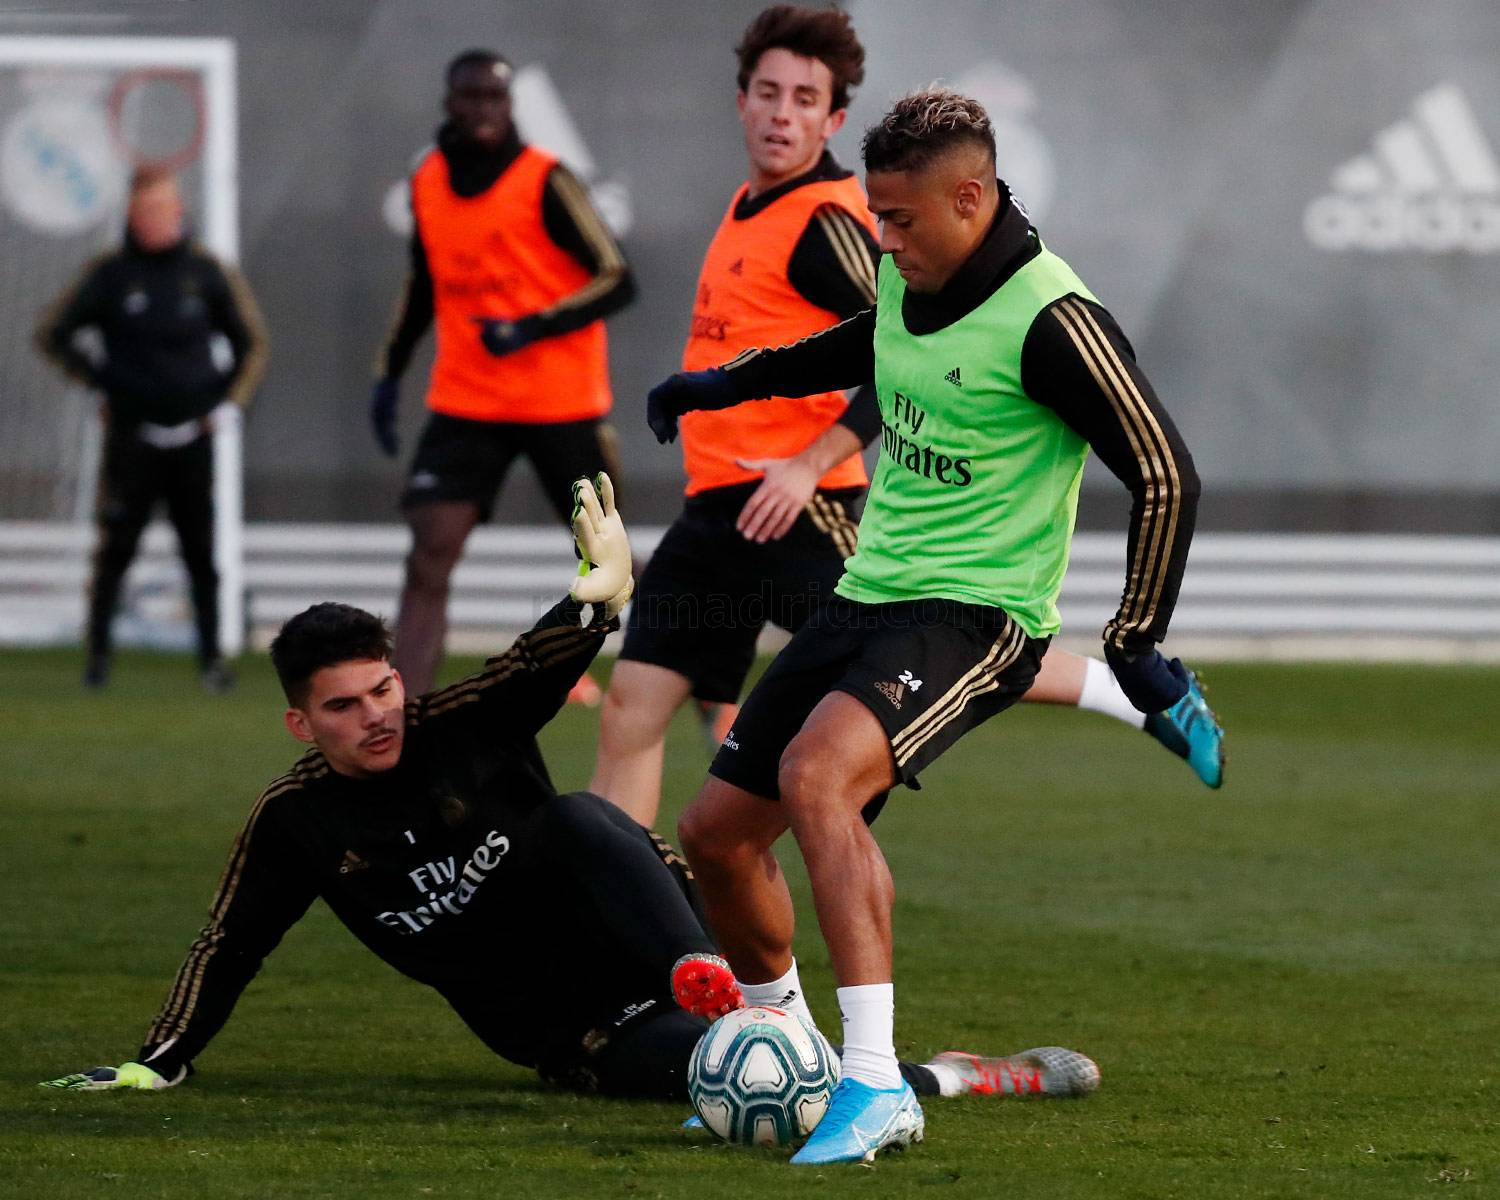 Real Madrid - Entrenamiento del Real Madrid  - 18-11-2019